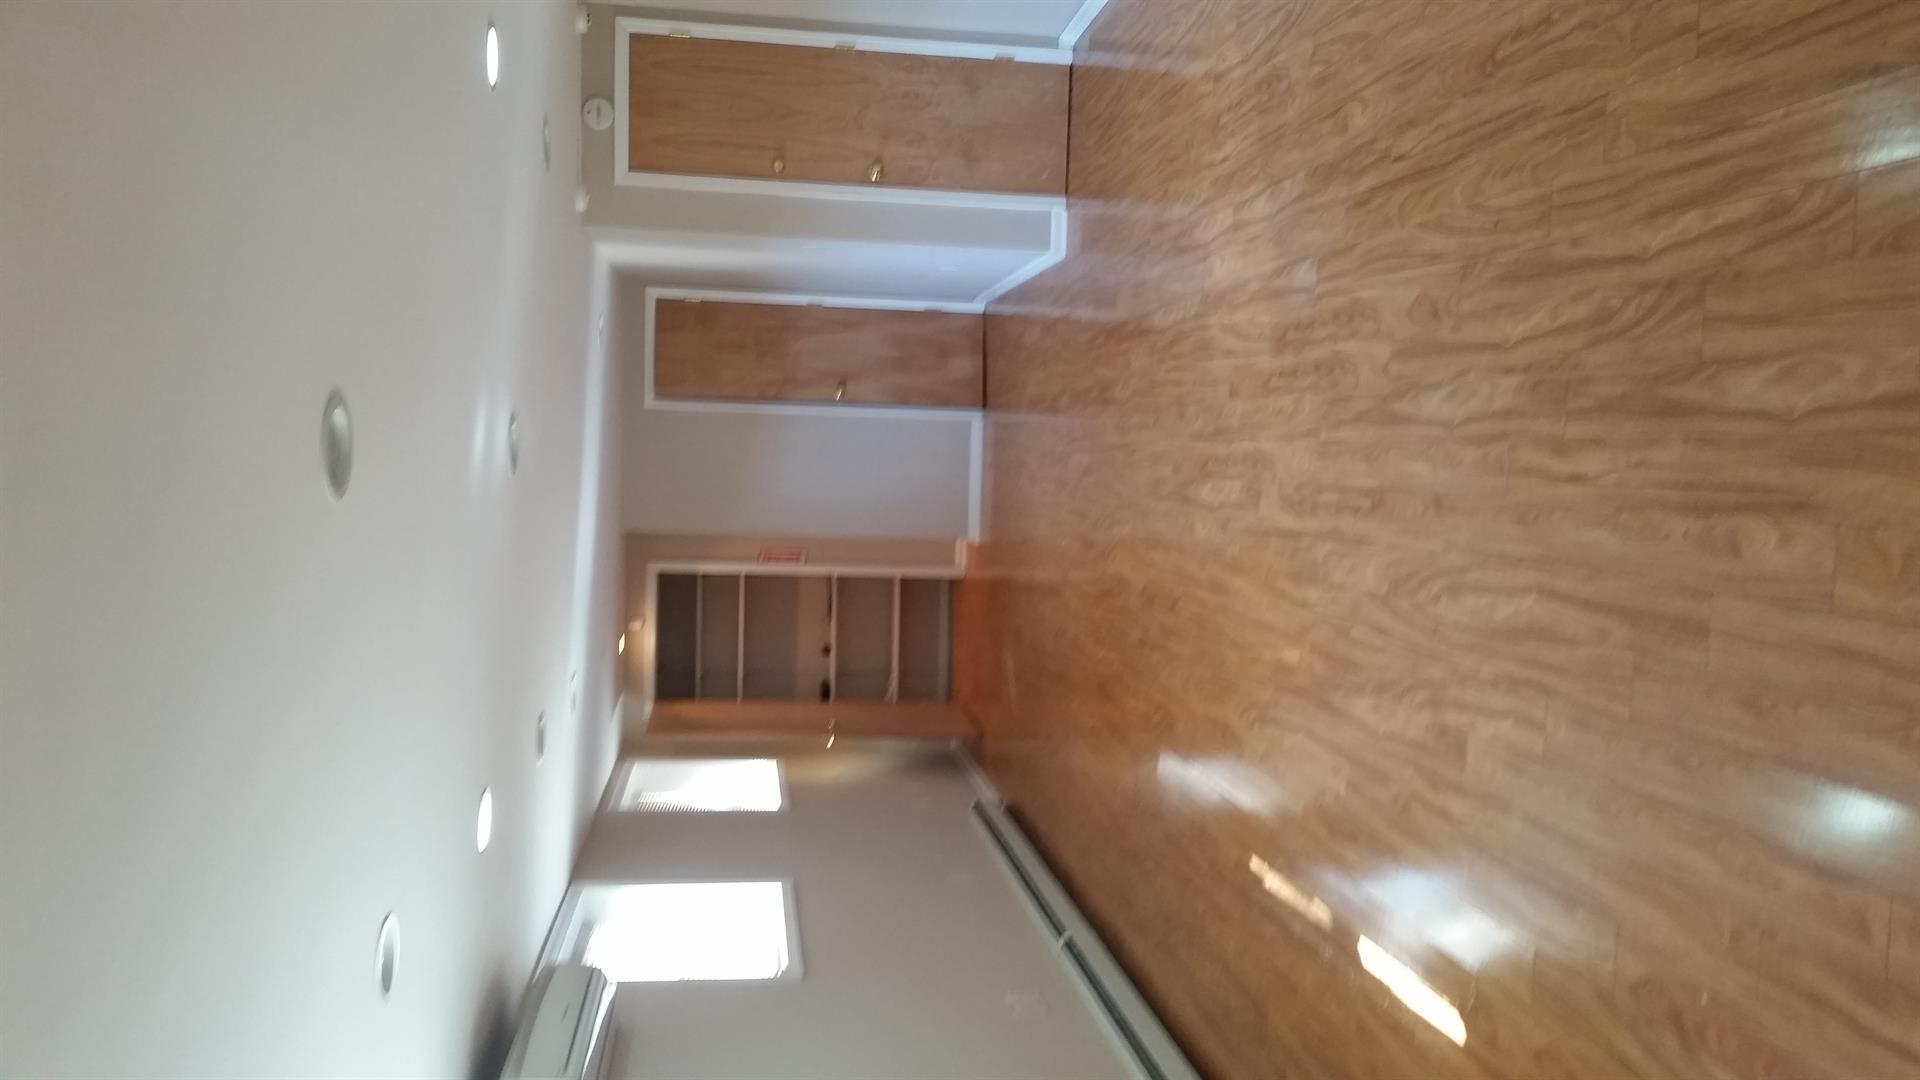 Commercial for Rent at 315 Ave W Brooklyn, New York 11223 United States